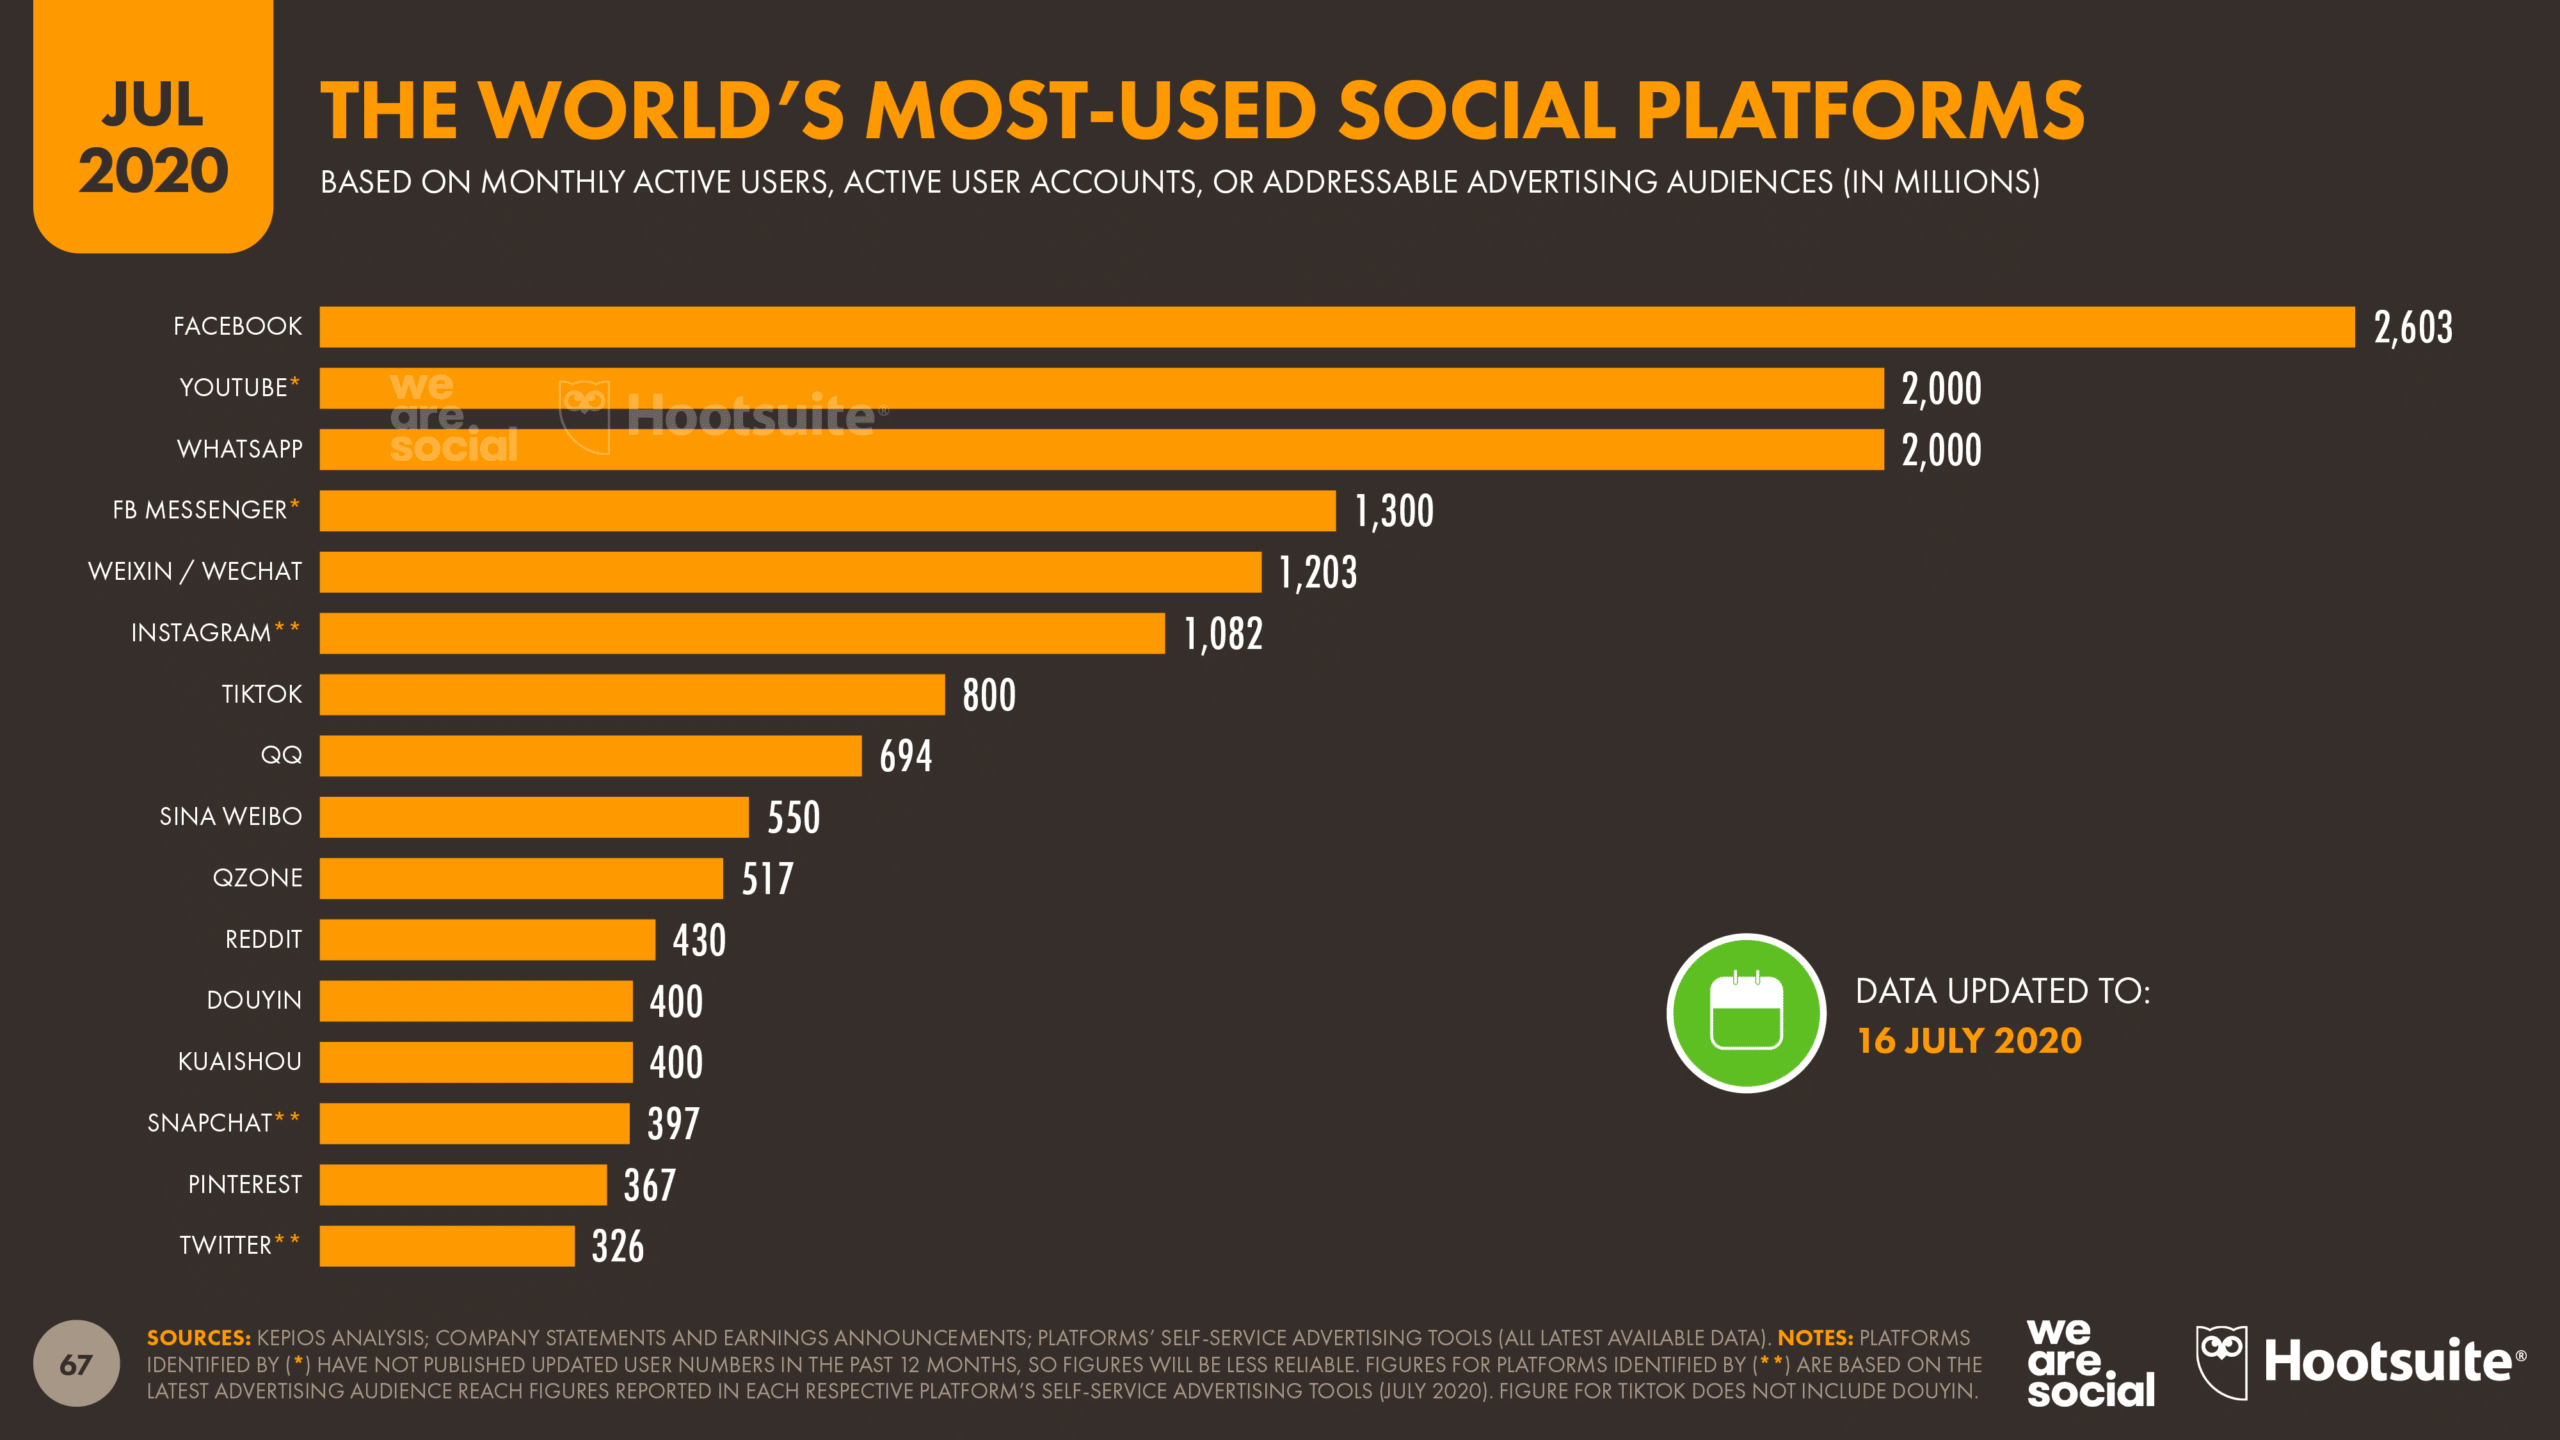 The most widely used social platforms in the world